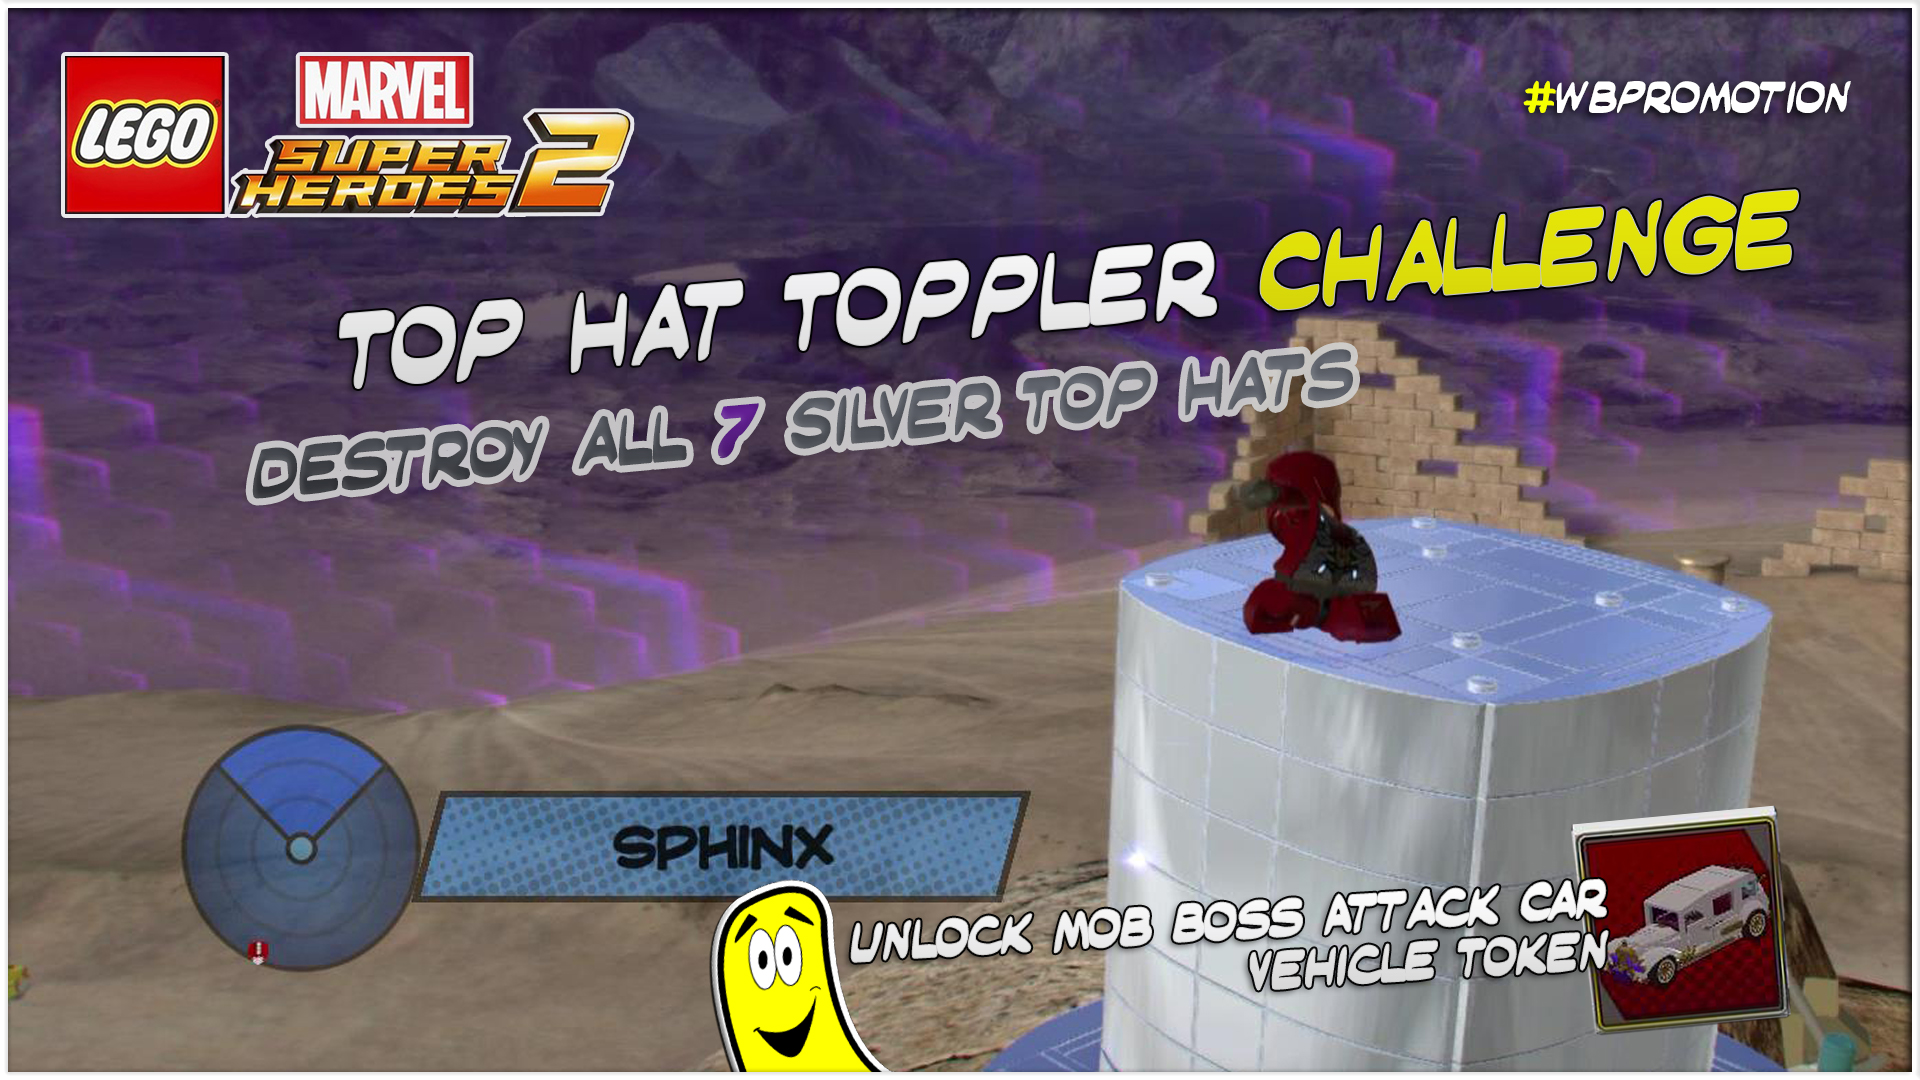 Lego Marvel Superheroes 2: Top Hat Toppler Challenge – HTG